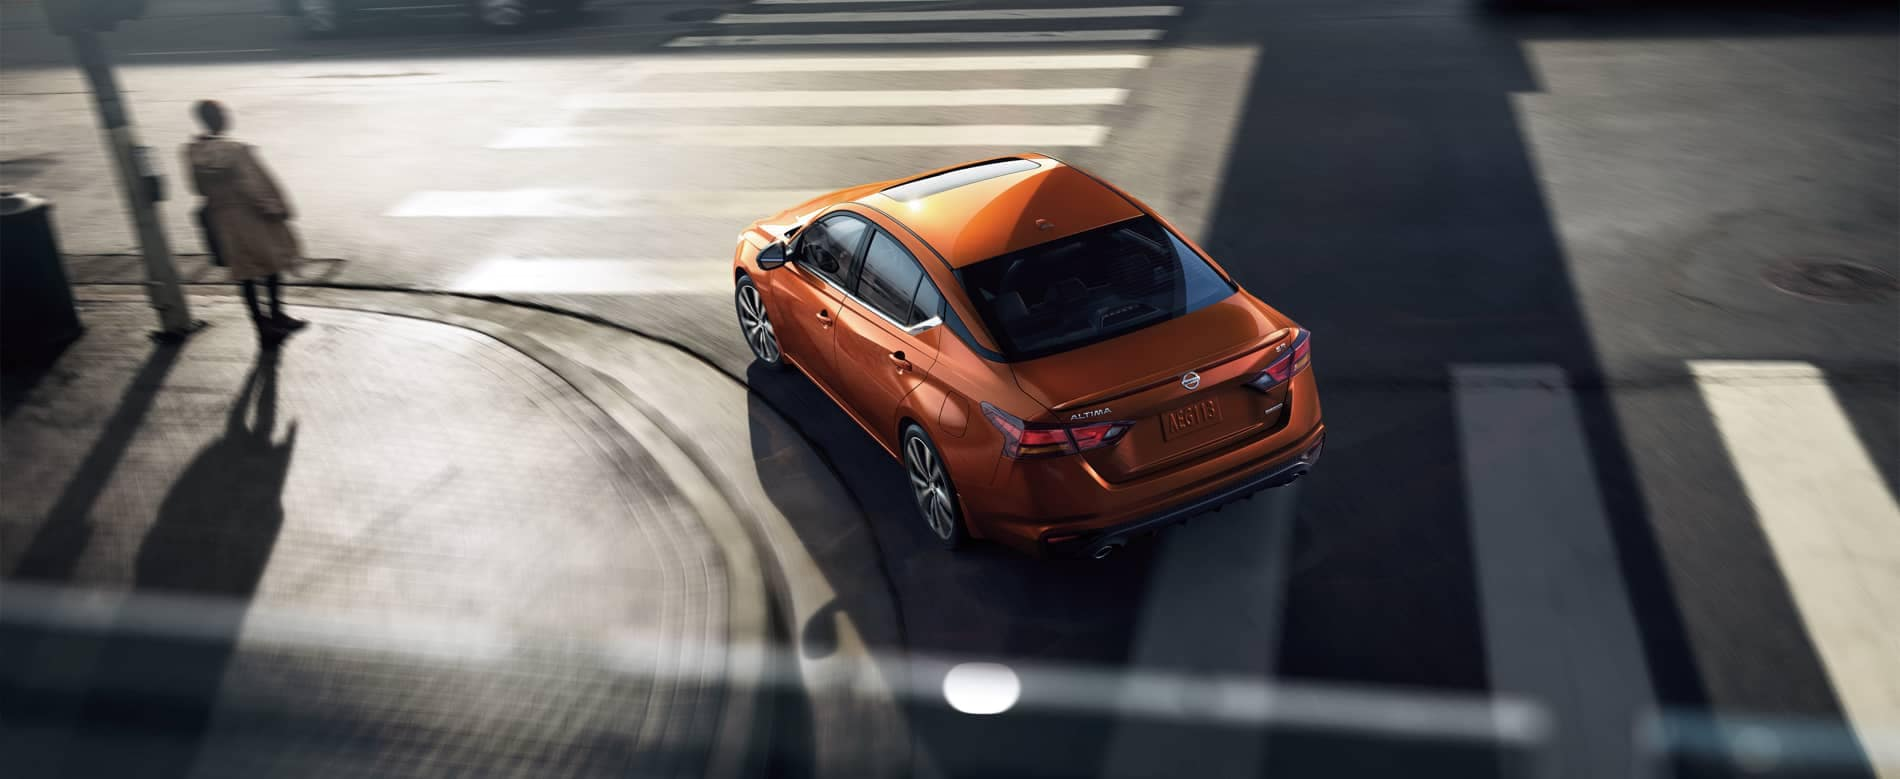 2020 Orange Nissan Altima